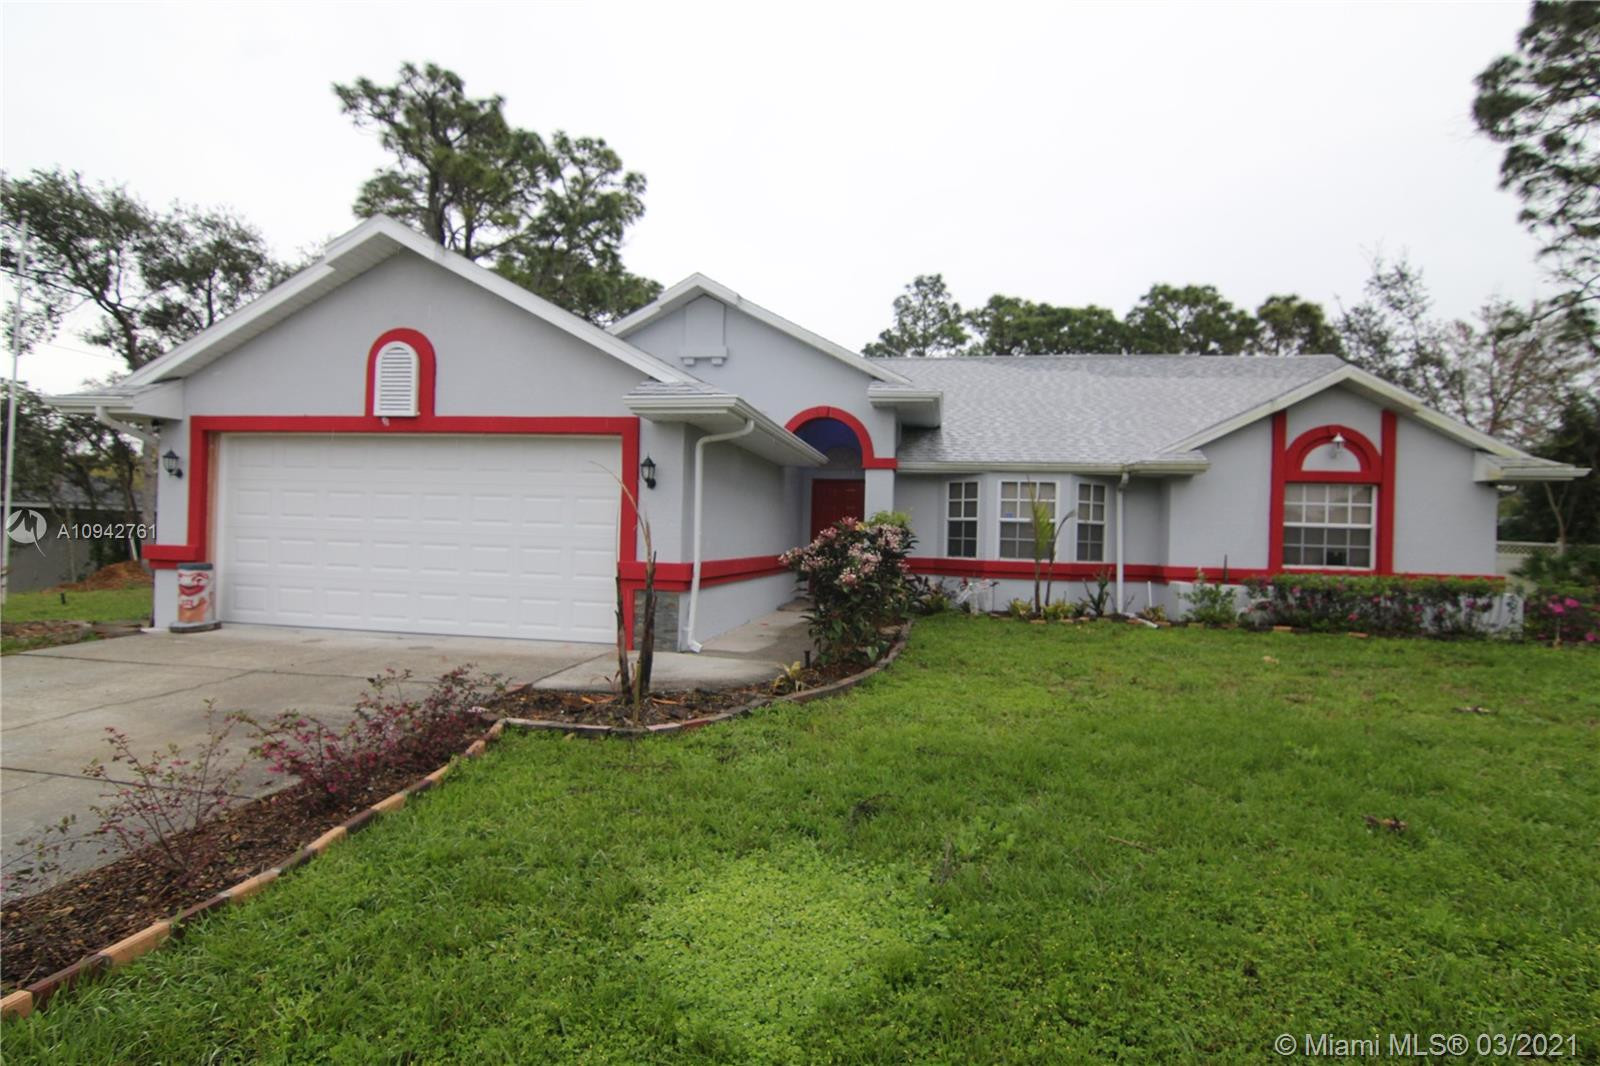 Details for 7476 Nightwalker Rd, Other City In The State, FL 34613